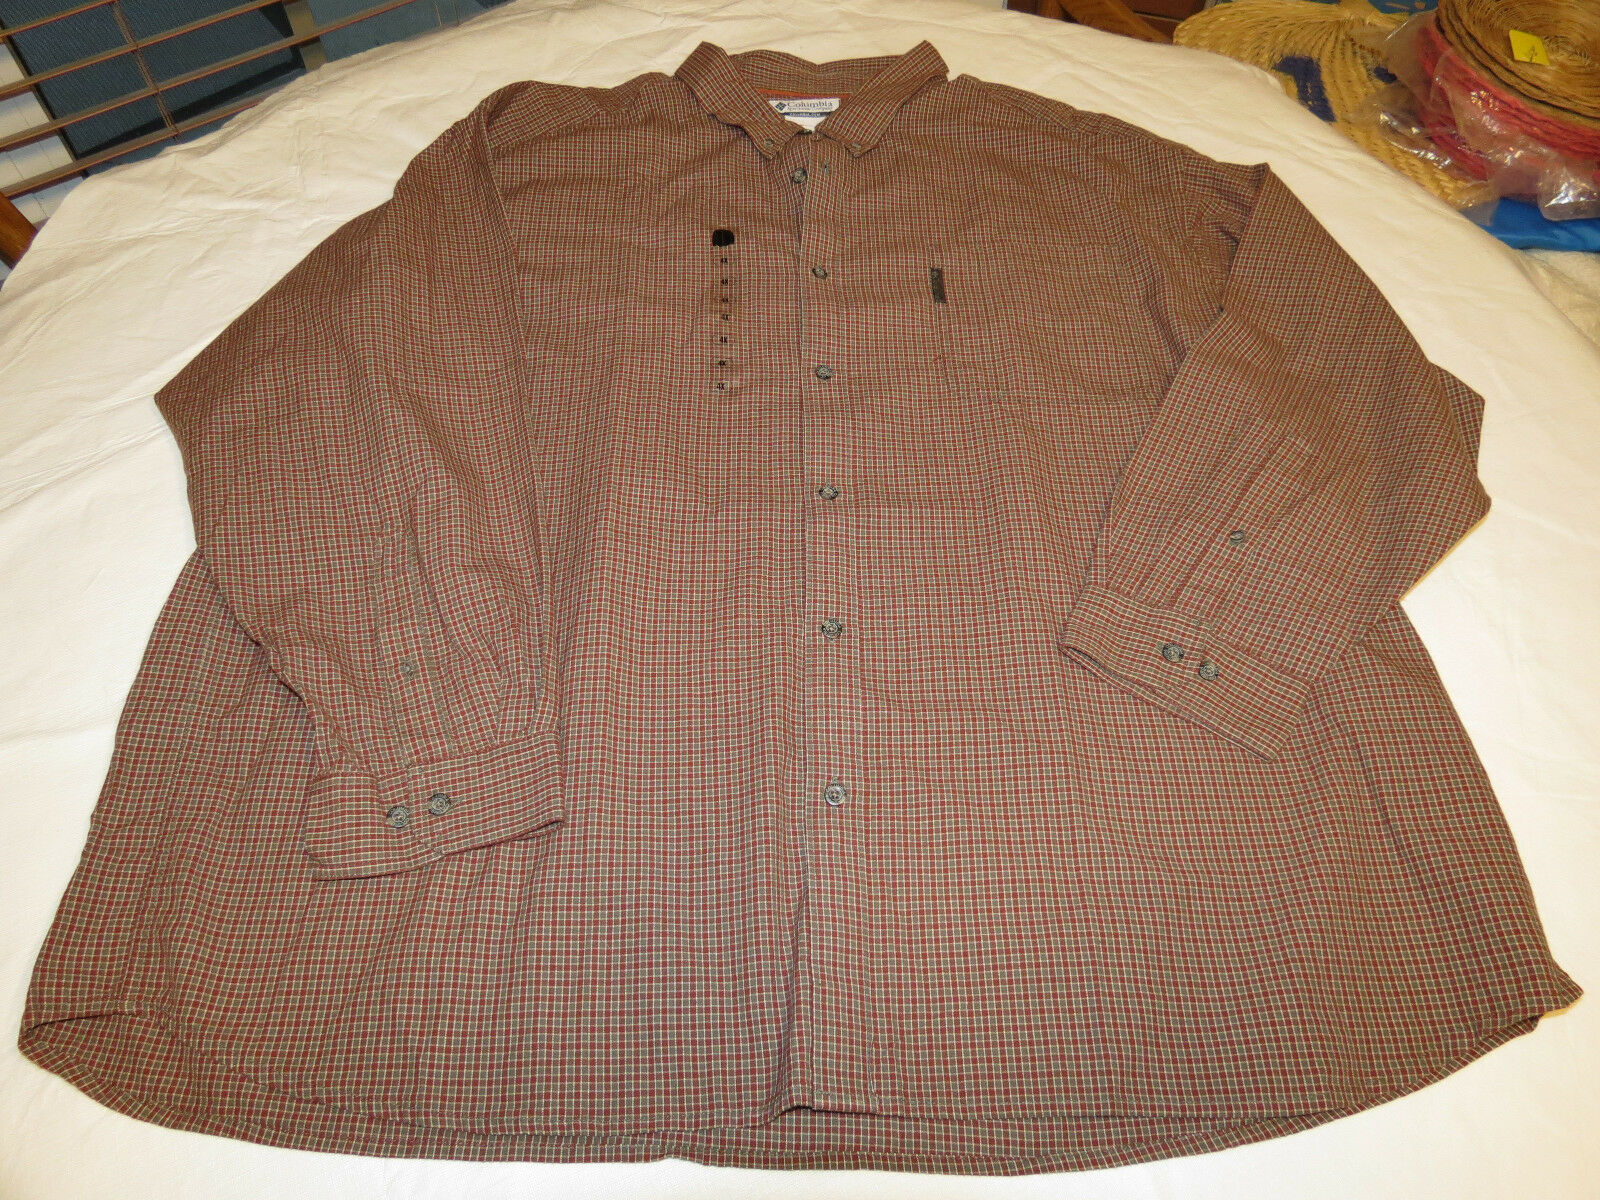 Mens Columbia Sportswear 4X AX7380-640 long sleeve button up shirt casual NWT@